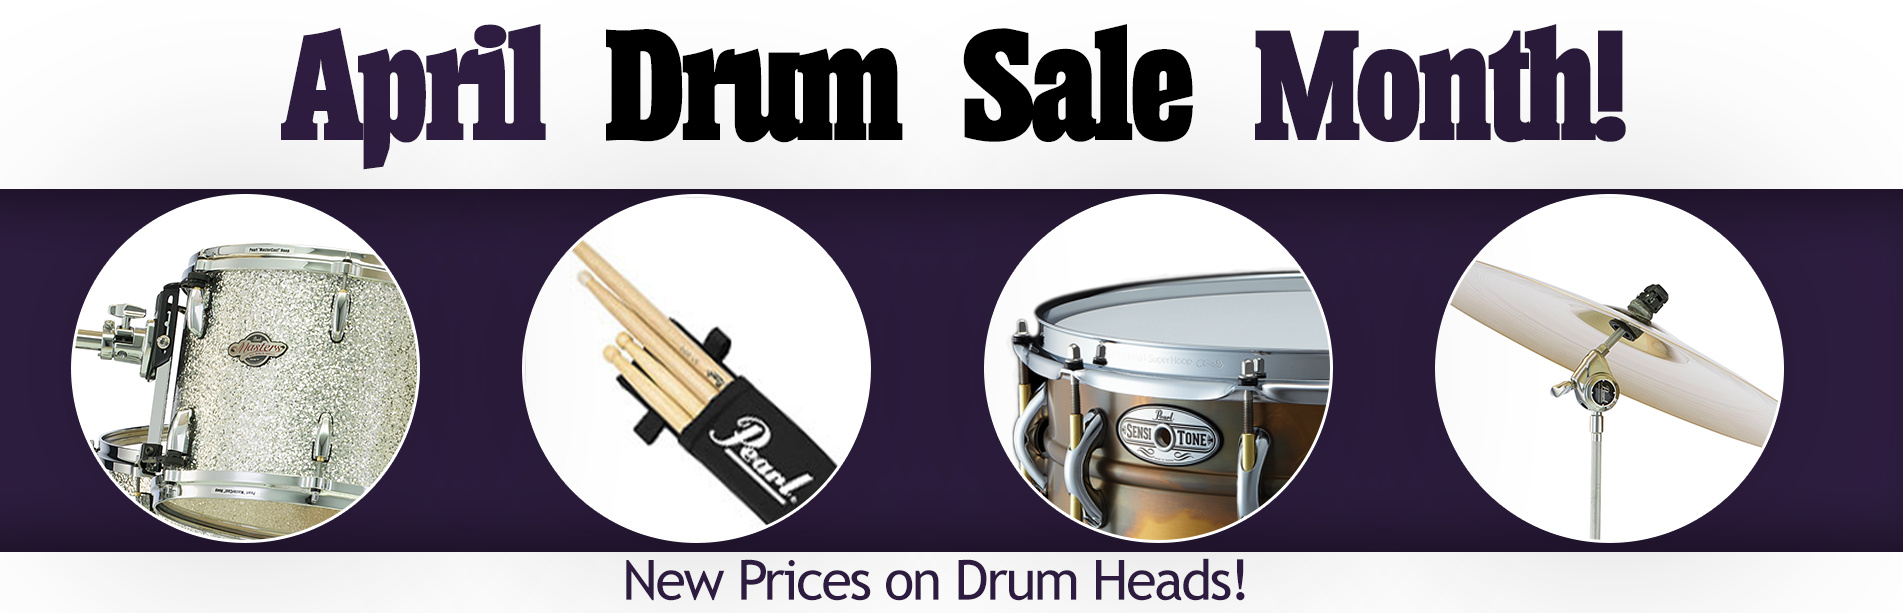 April-Drum-Sale-Month